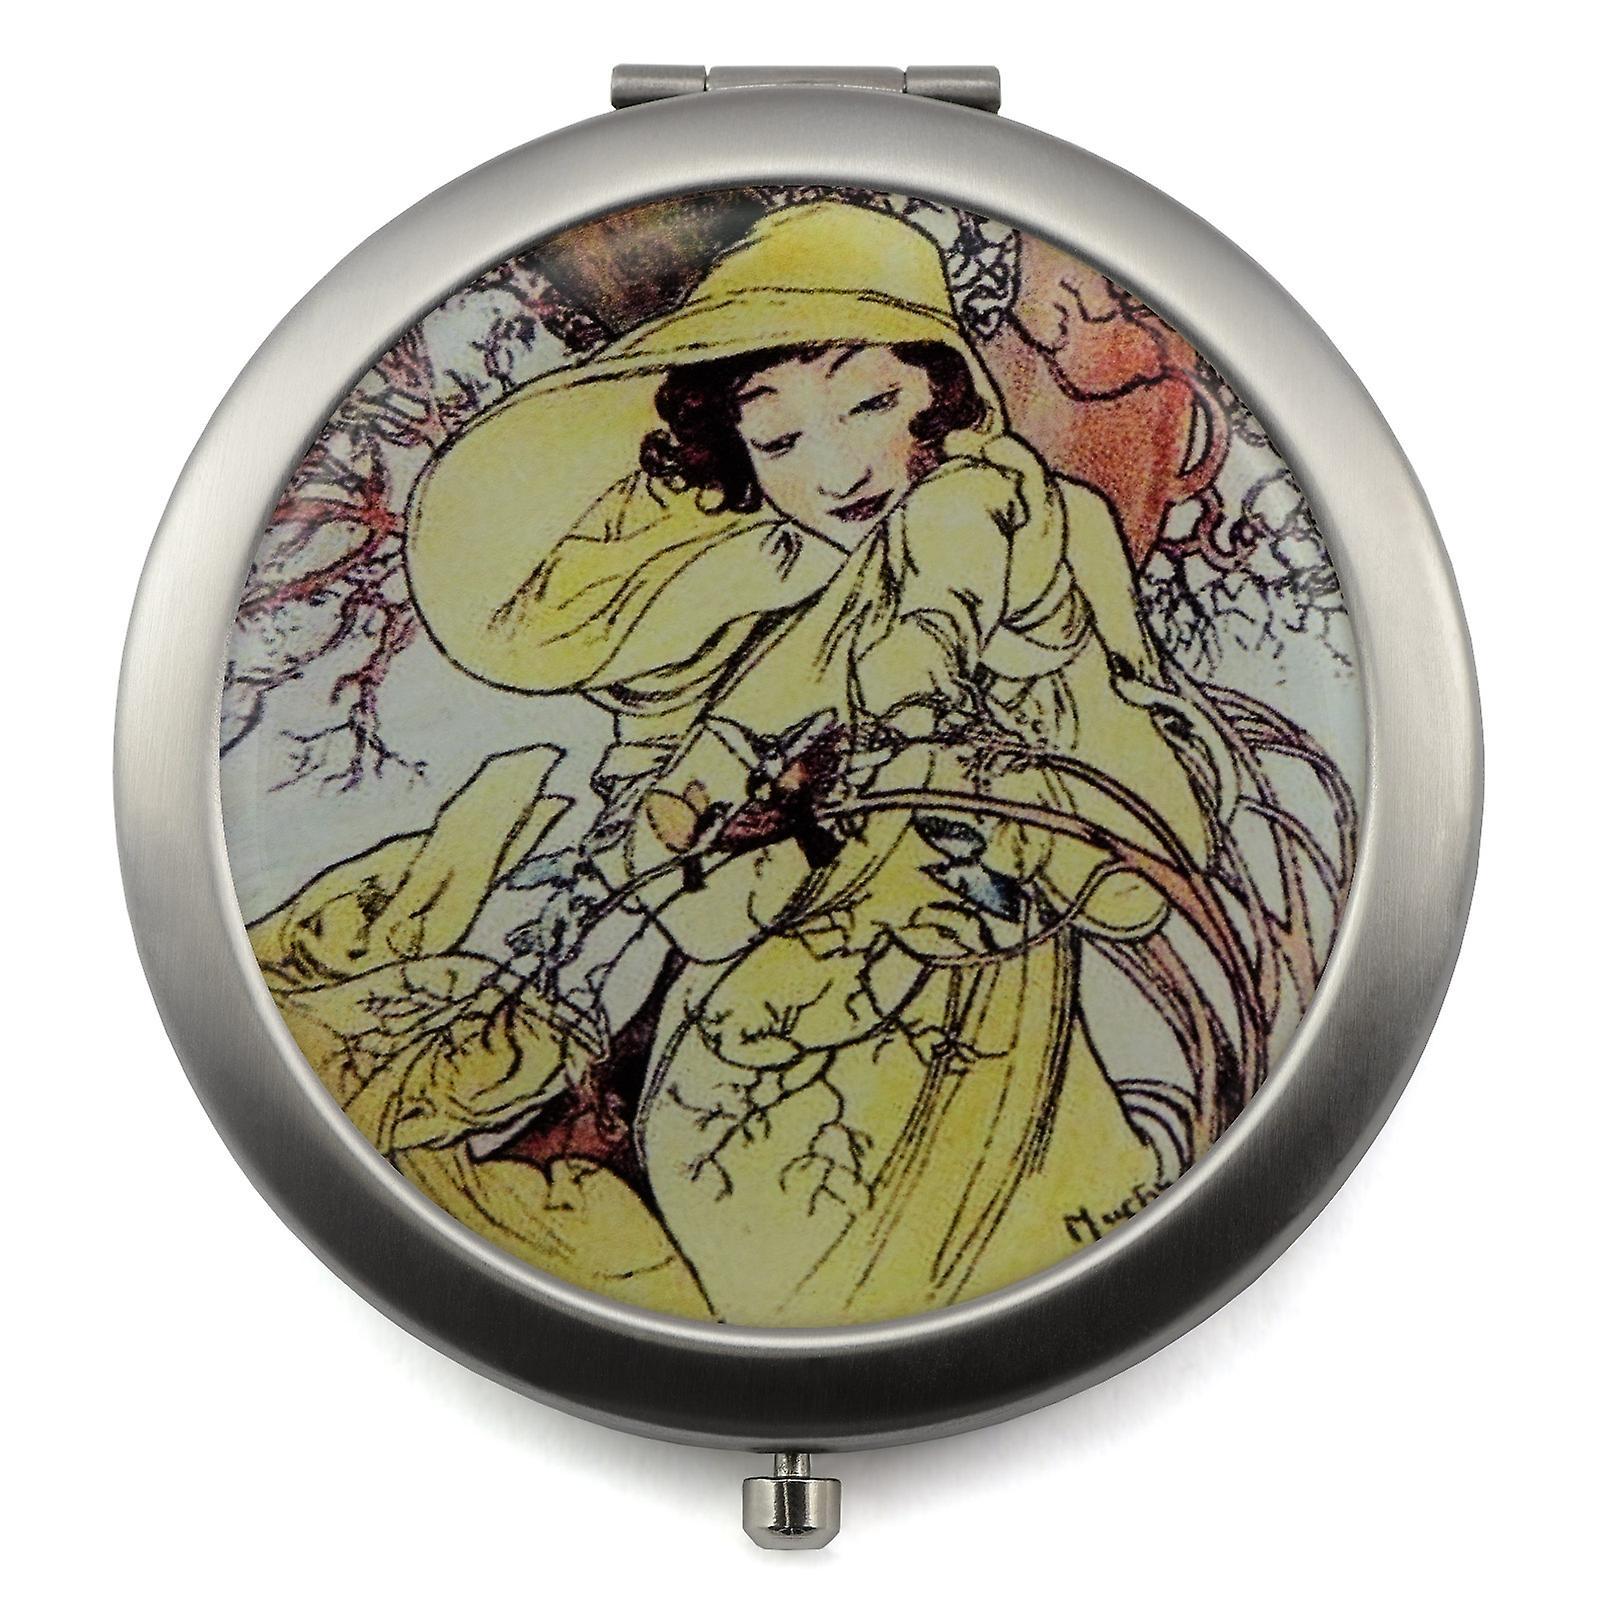 Four Seasons Compact Mirror